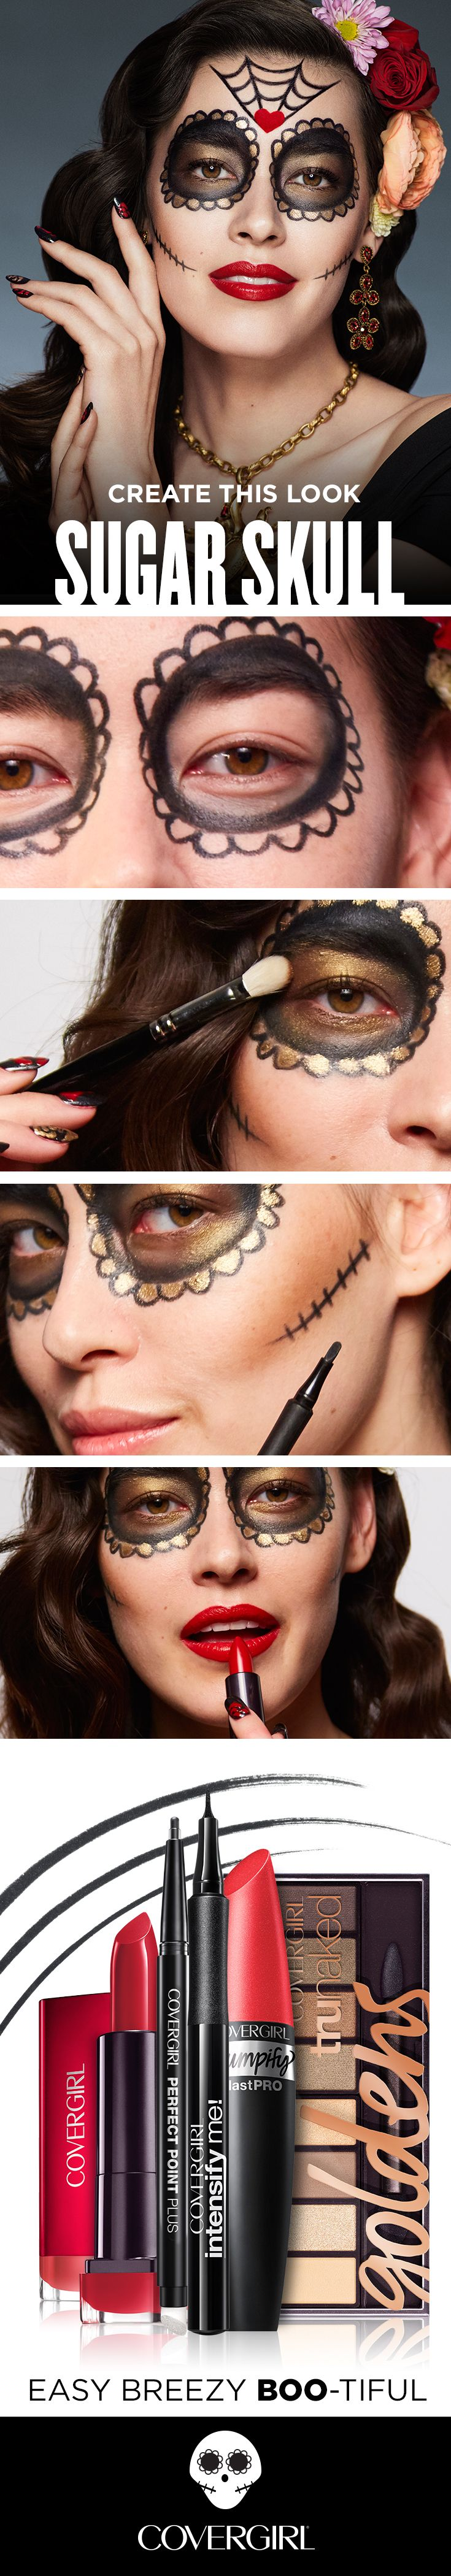 "Follow this DIY guide to transform into the Sugar Skull, inspired by the Mexican Day of the Dead, ""Dia de los Muertos."" Start with Clean Matte BB Cream for a perfect canvas. Then, use both Intensify Me! and Perfect Point Plus Eyeliners to draw lacey designs on the face. Add Plumpify Mascara for length. Fill it in with a range of shadows from the truNaked Goldens Palette - bronze around the eyes and gold inside the lace. Lips are a deep red in Colorlcious Seduce Scarlet."